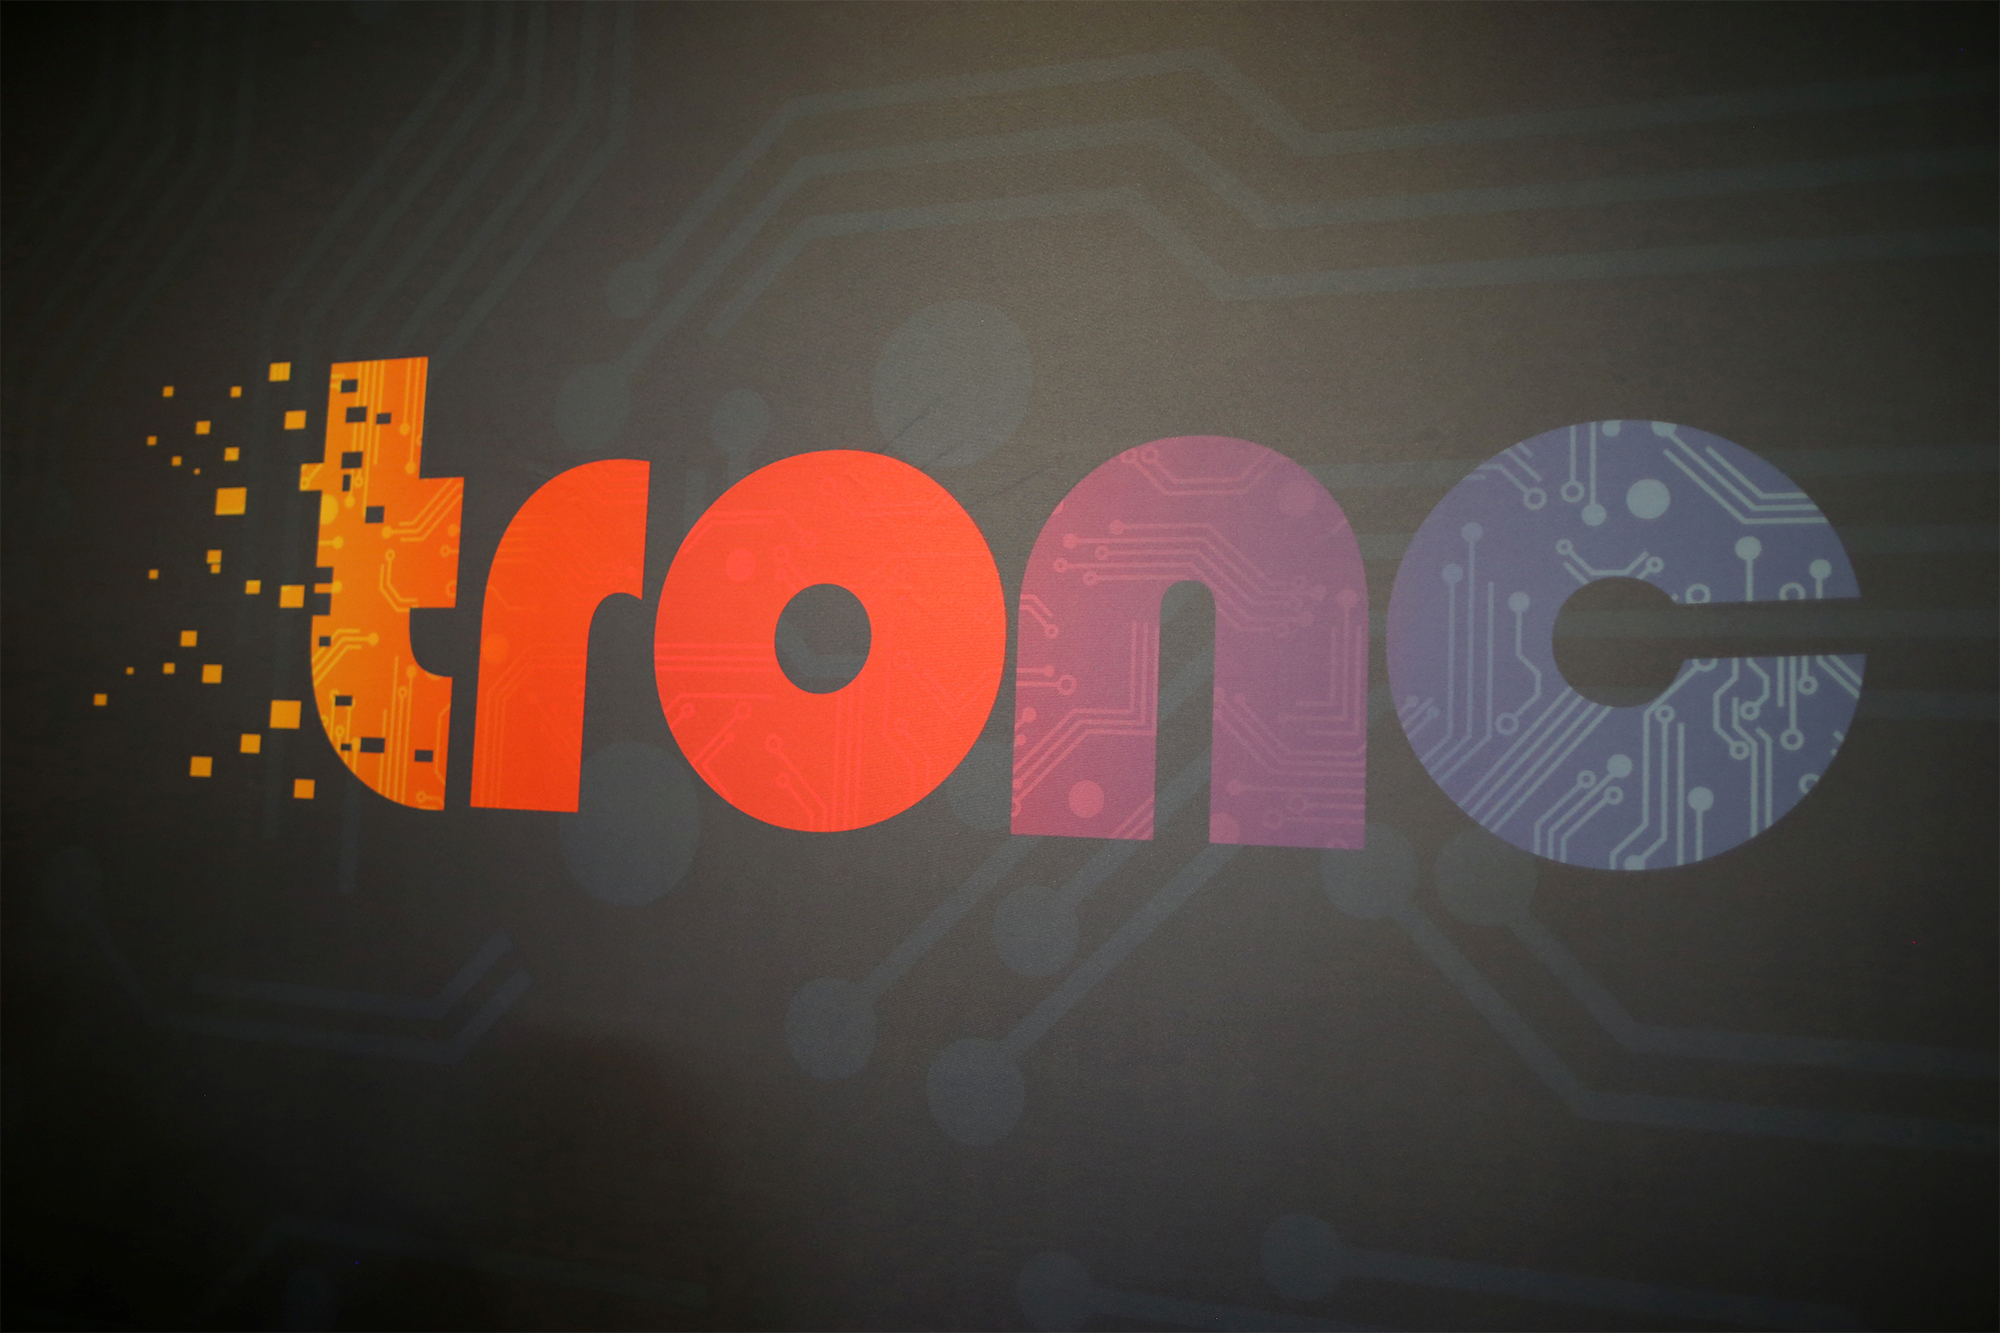 Tronc Stock Tumbles With Big Deals Unfinished